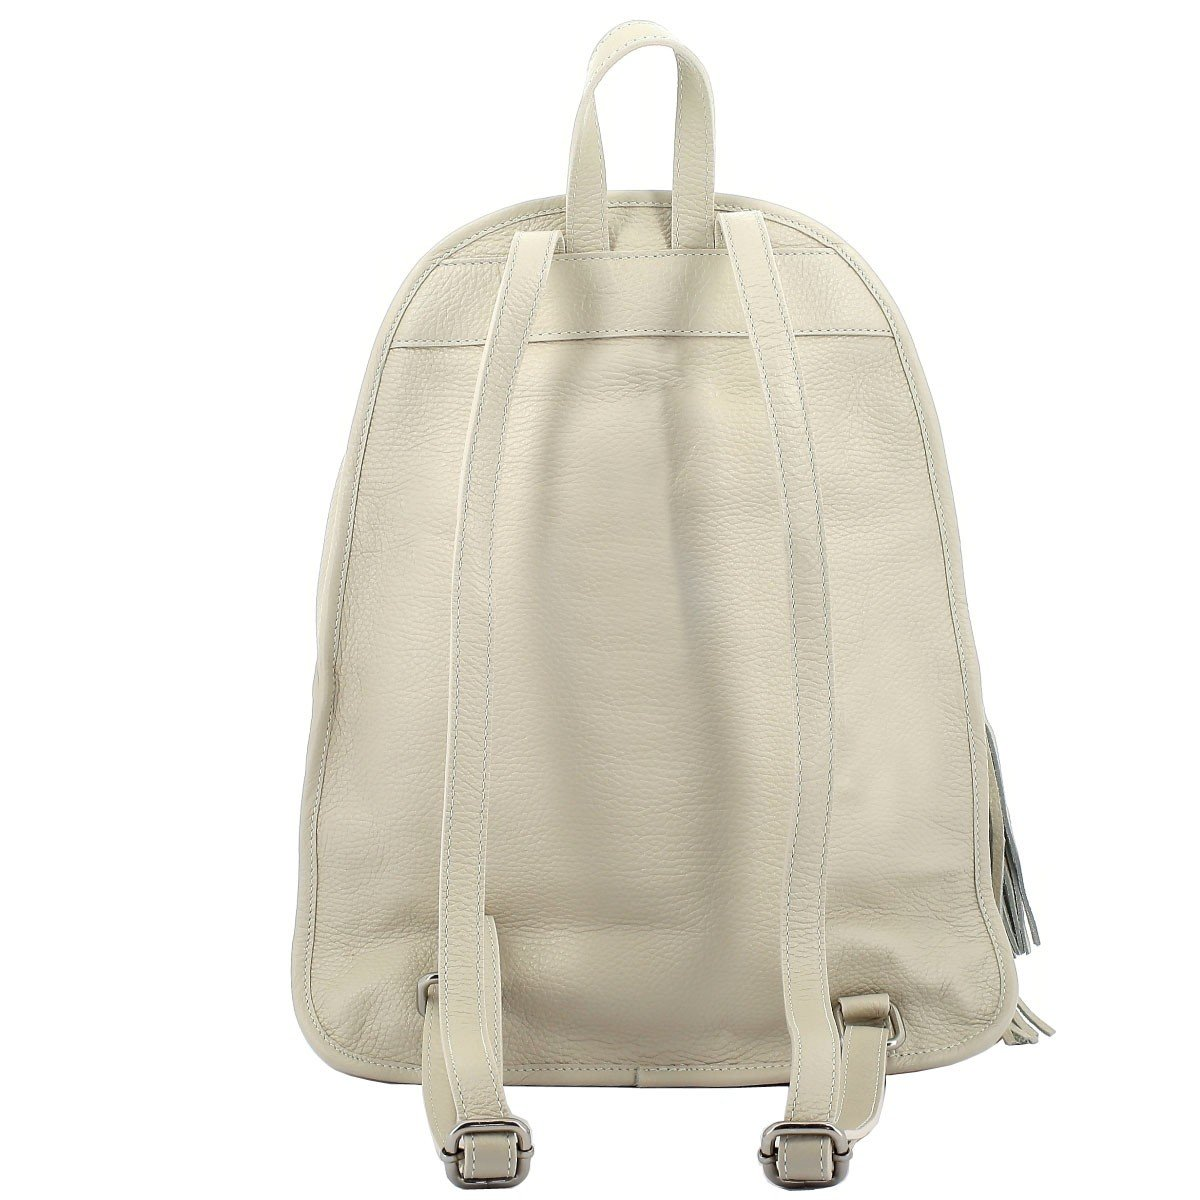 Dream Leather Bags Made in Italy Genuine Leather Genuine Leather Woman Backpack Color Beige